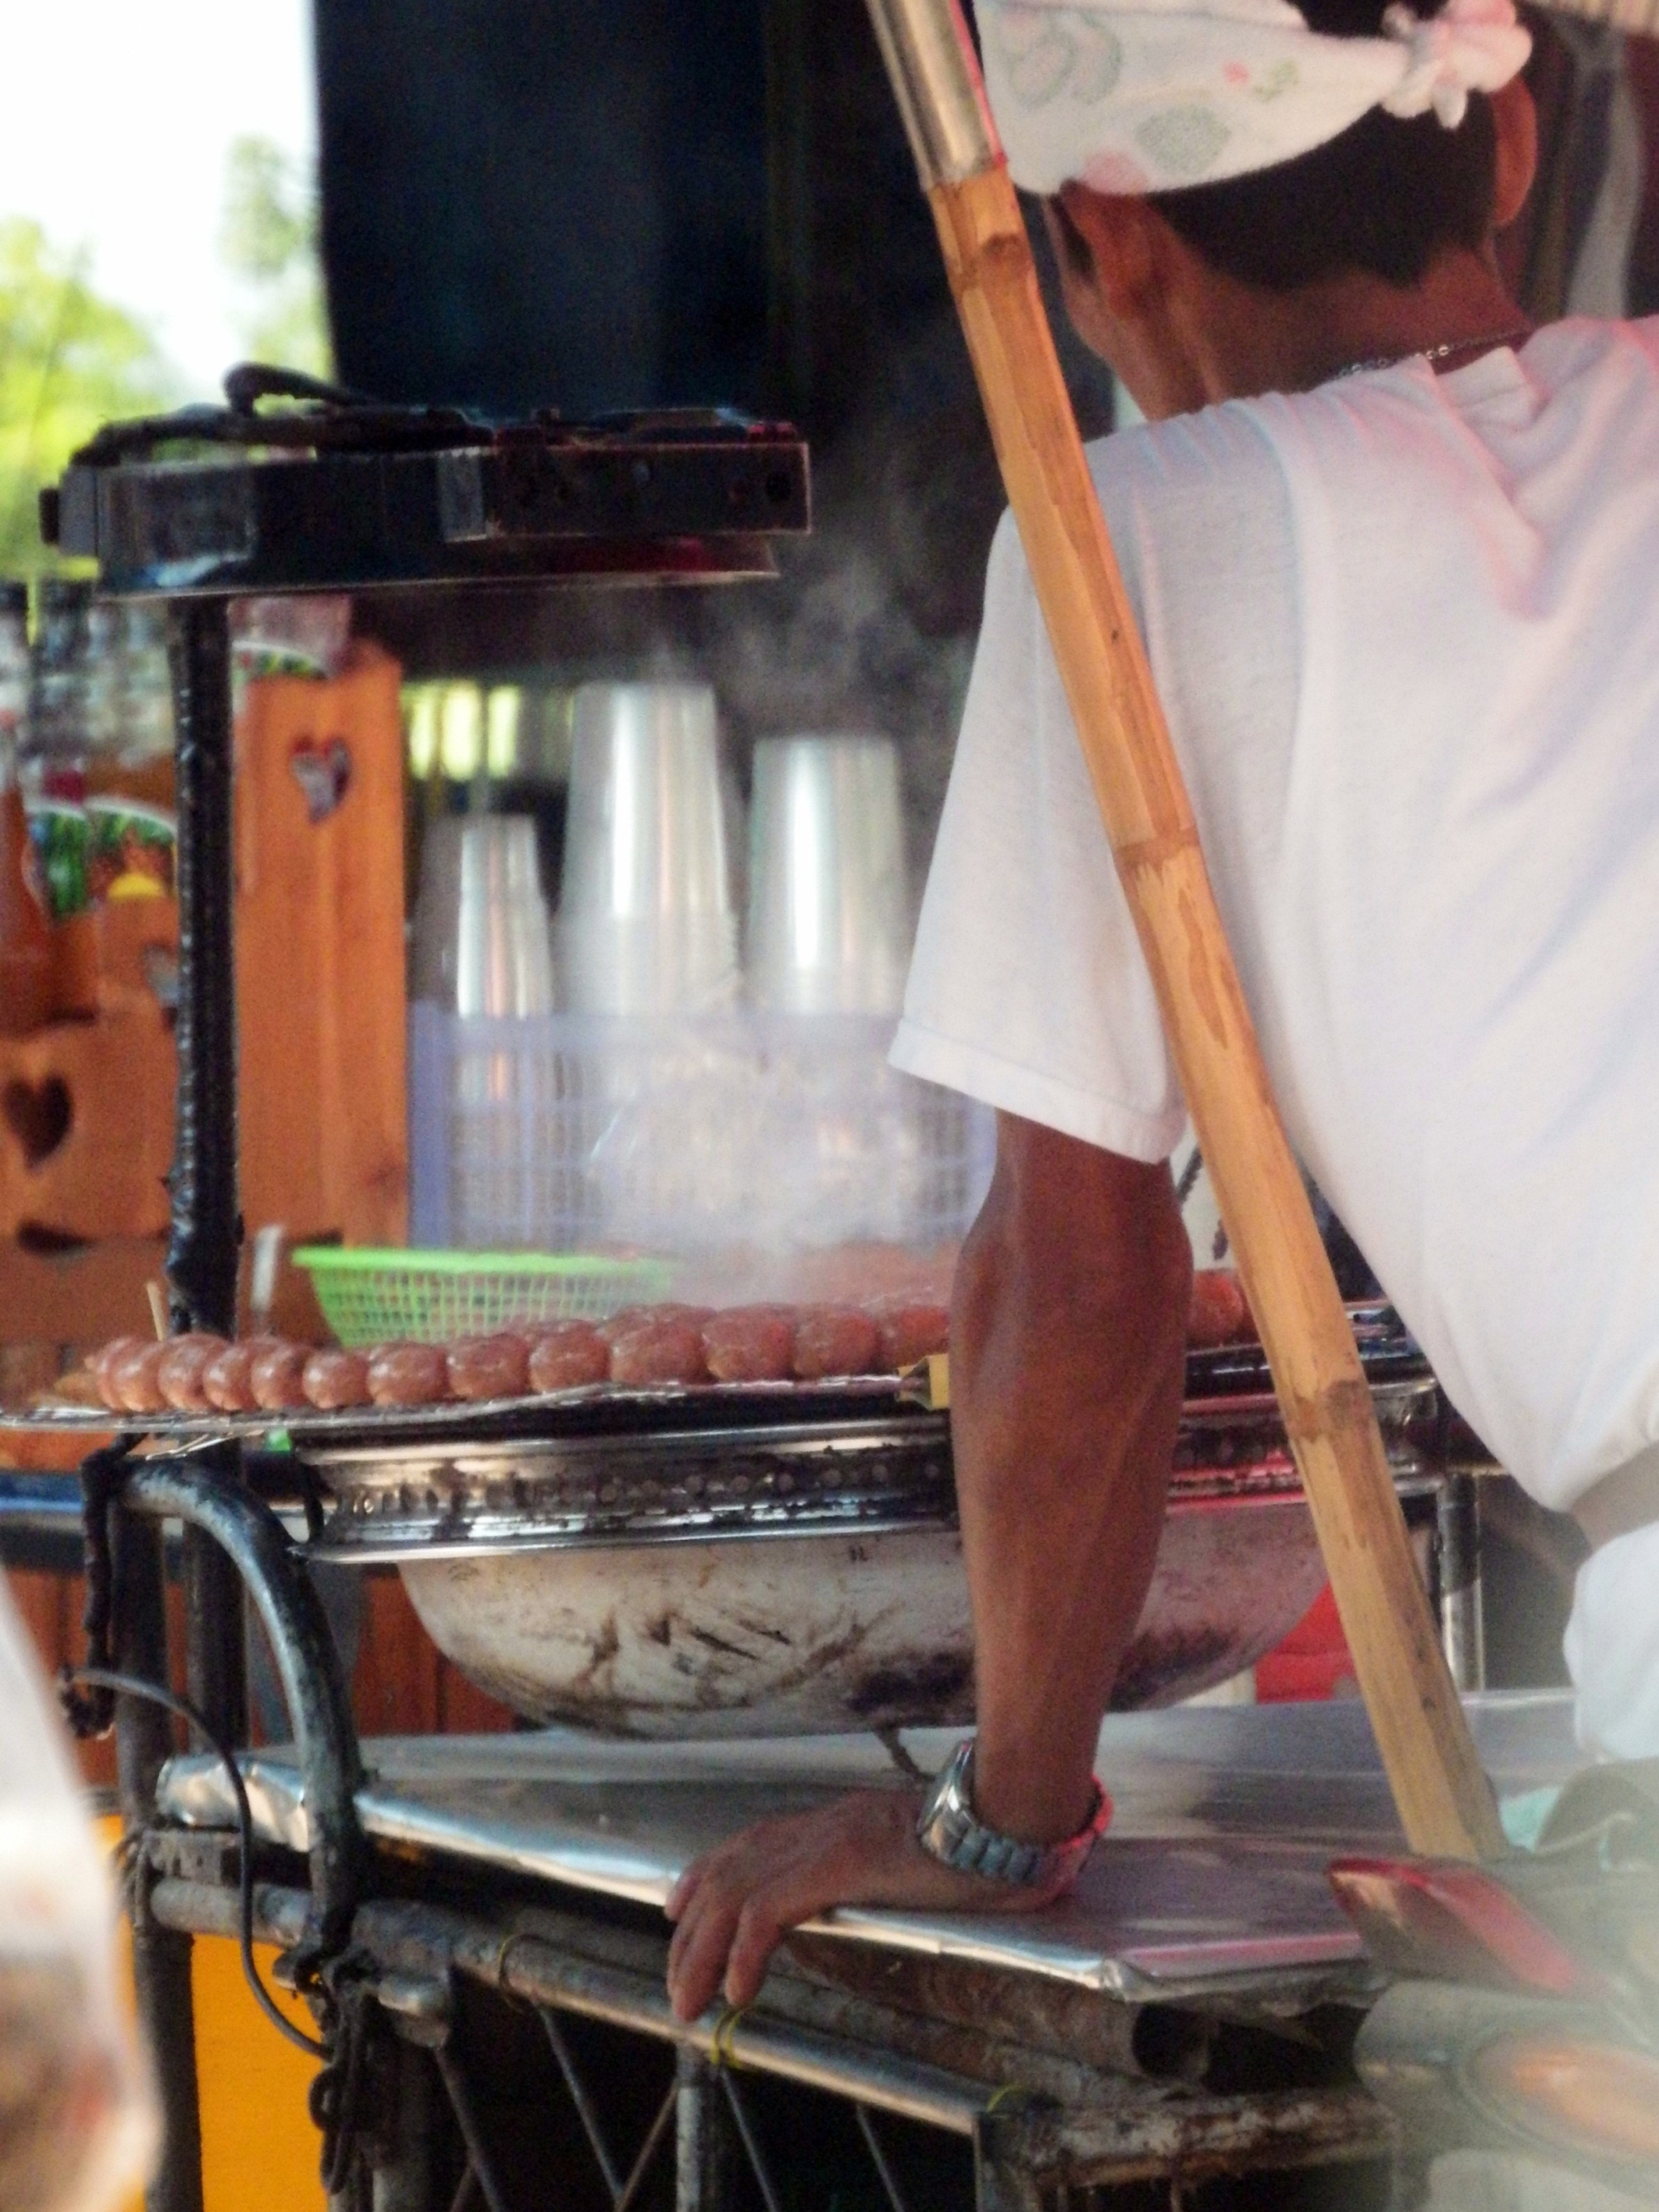 Street Vendor Cooking Sausages, Asia, Market, Thailand, Street, HQ Photo